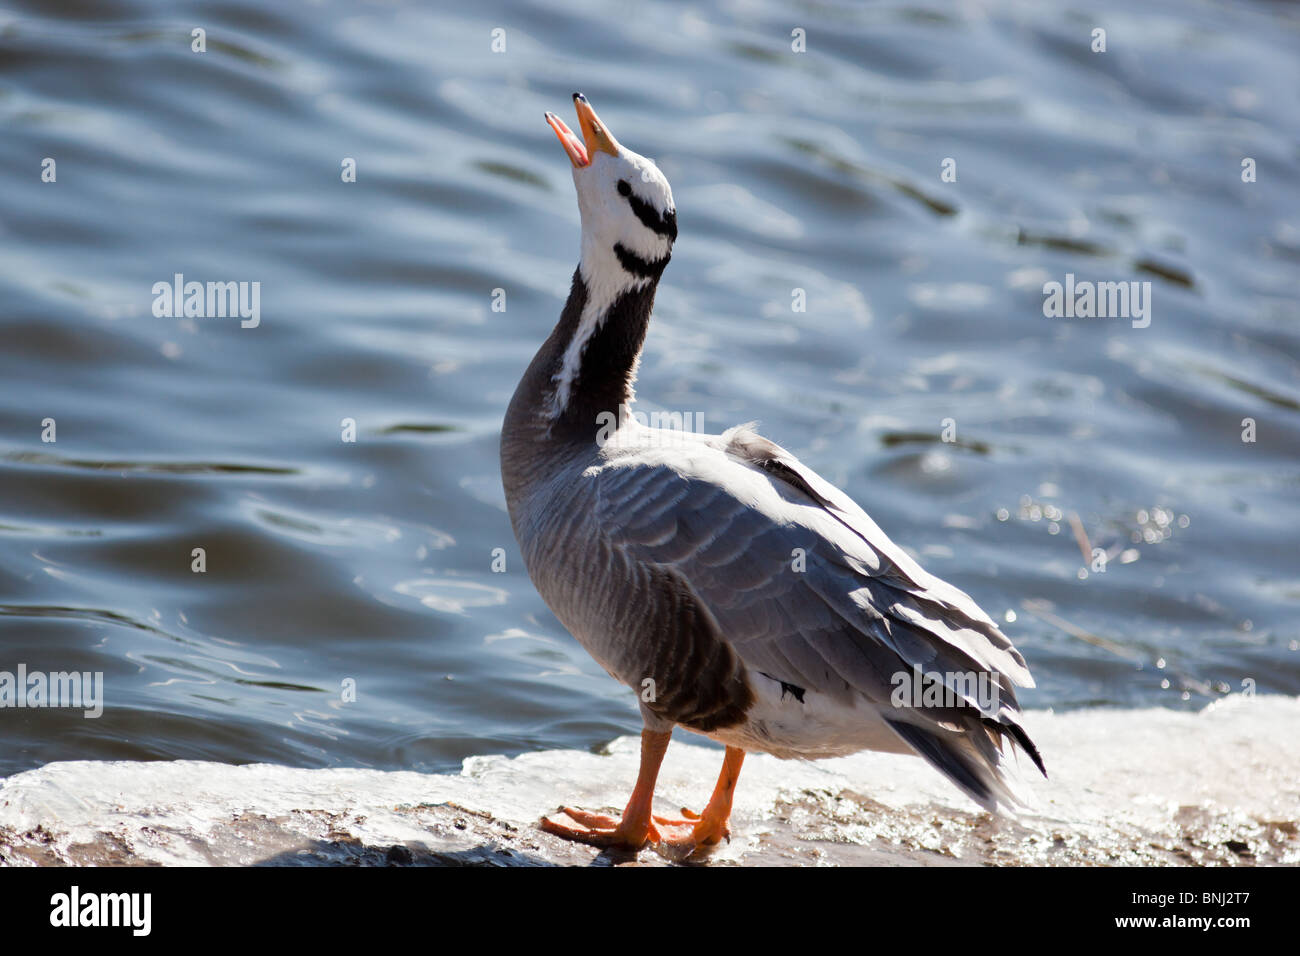 Bar-headed Goose, Eulabeia indica, Anser indicus. The animal is in a zoo. - Stock Image